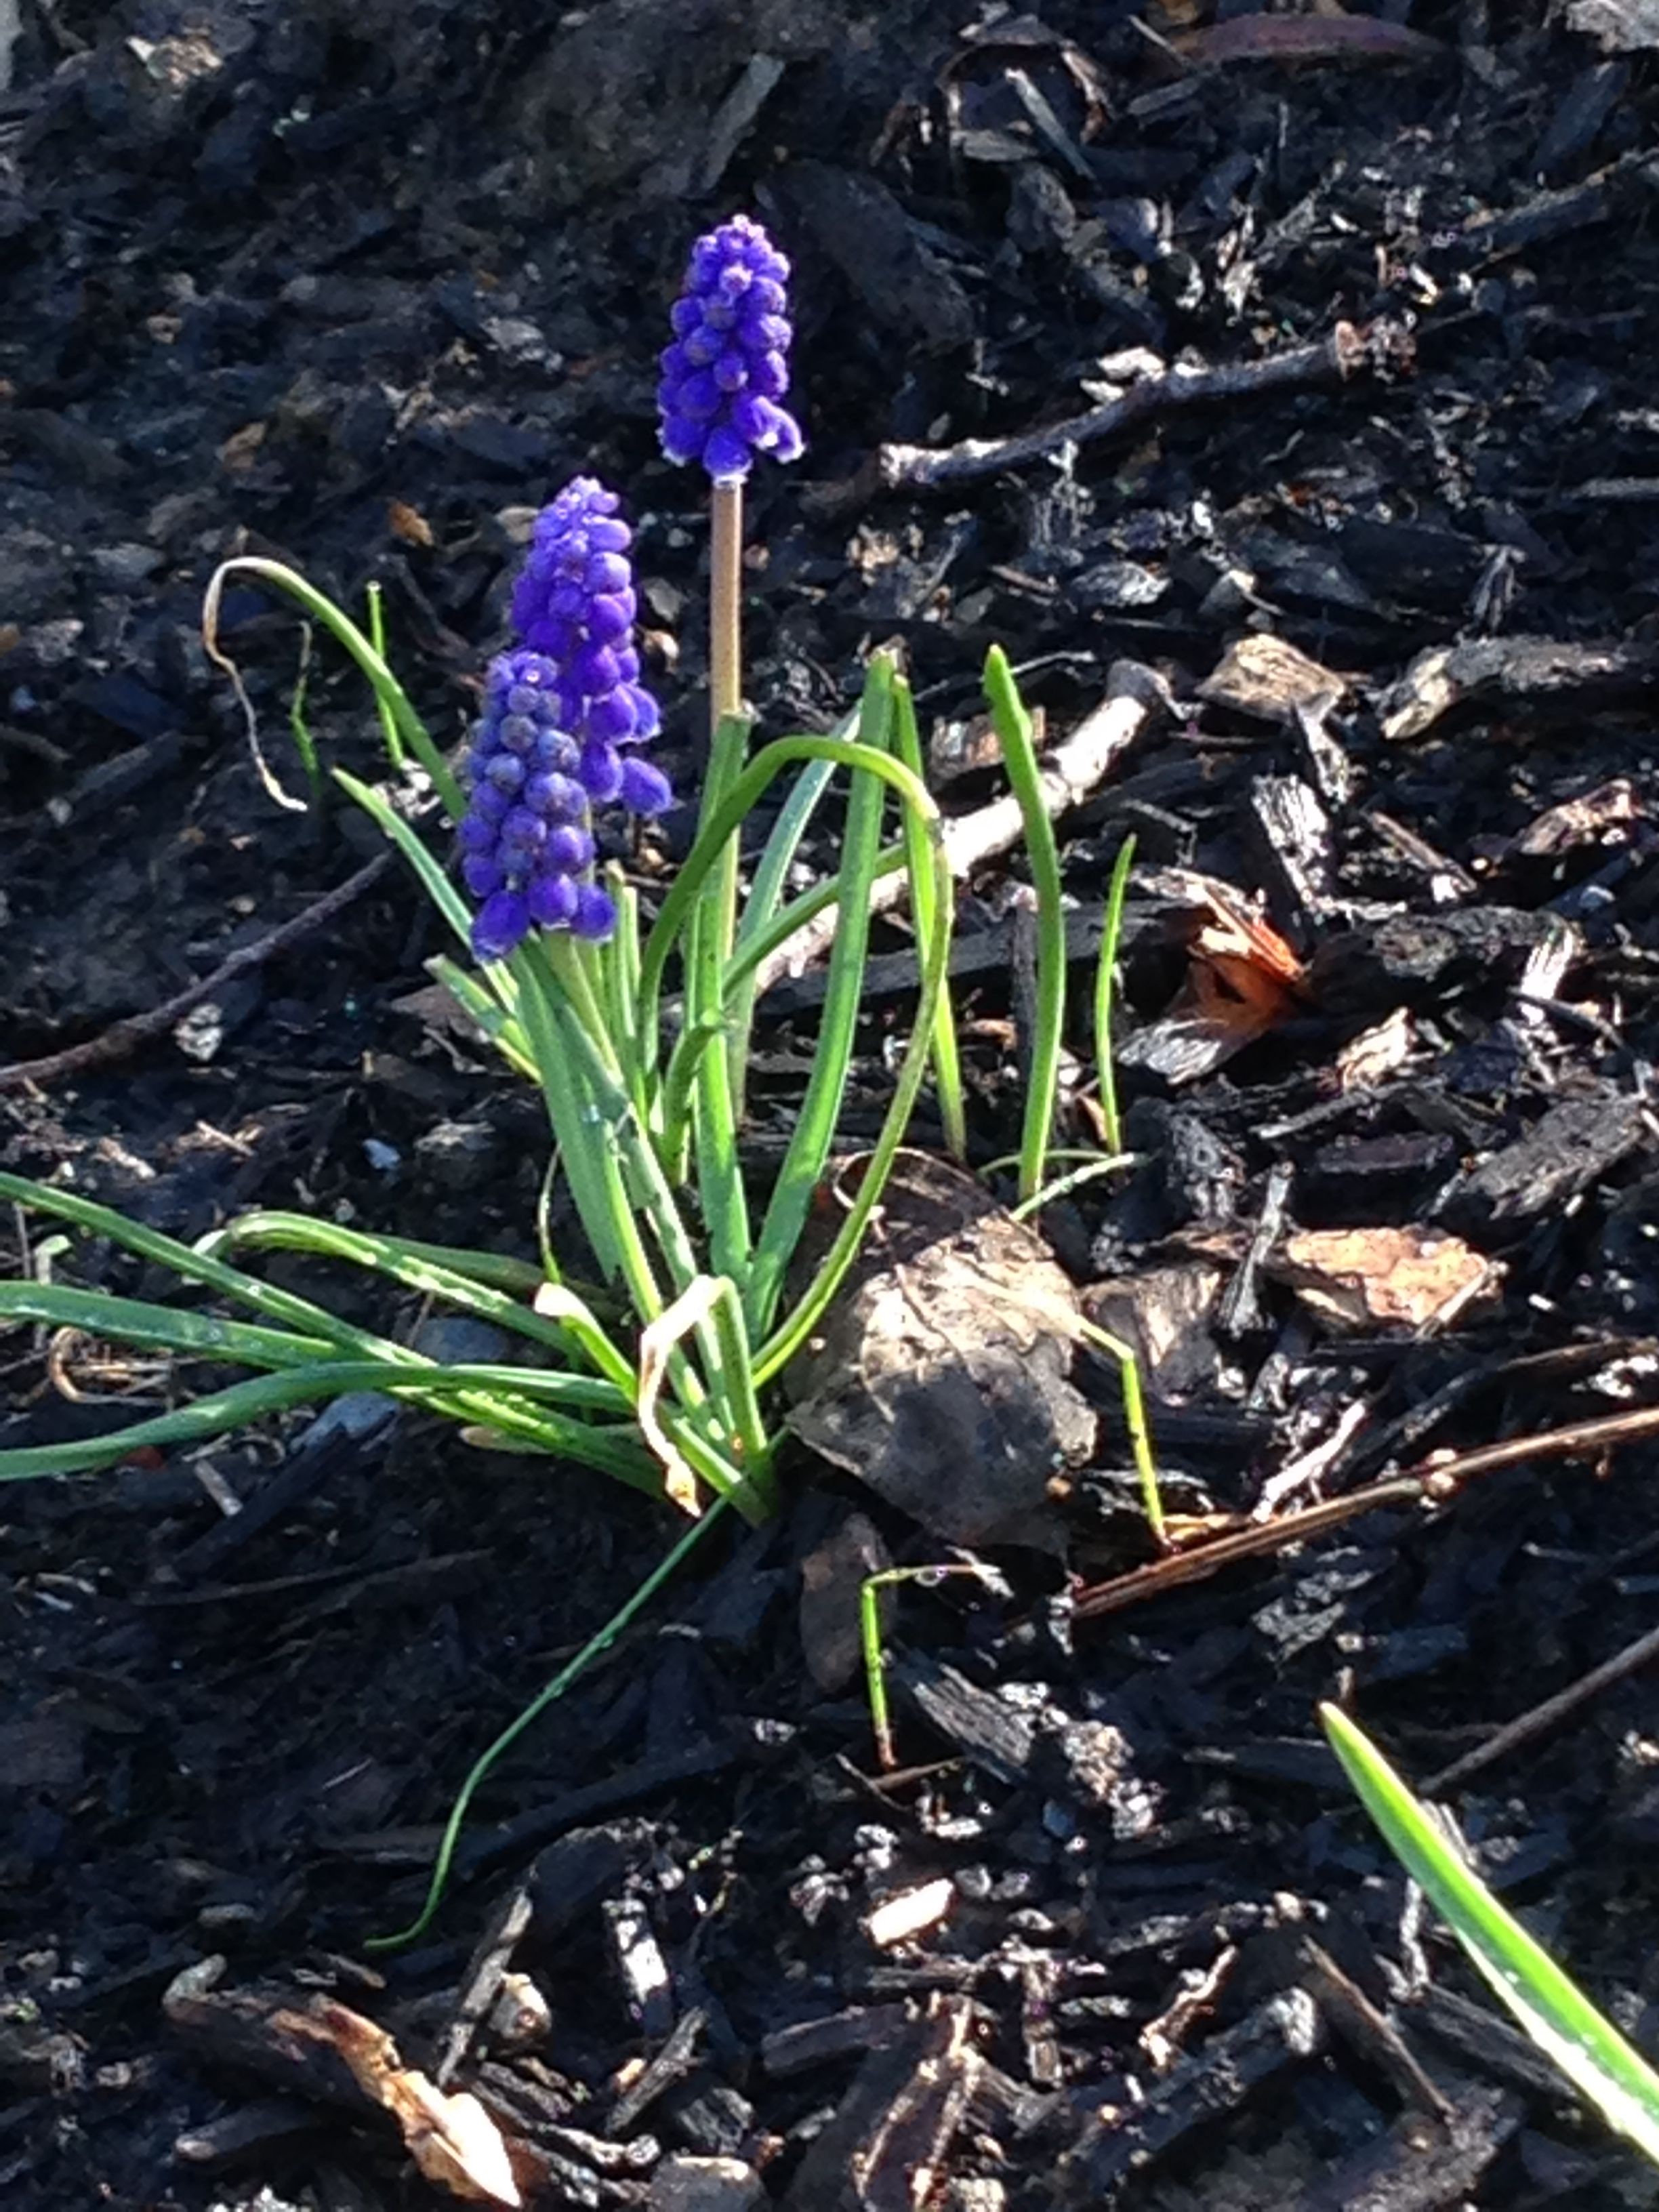 Spring 2014 - Grape Hyacinth bulbs in bloom.  Another welcome sign of spring after a long harsh winter.